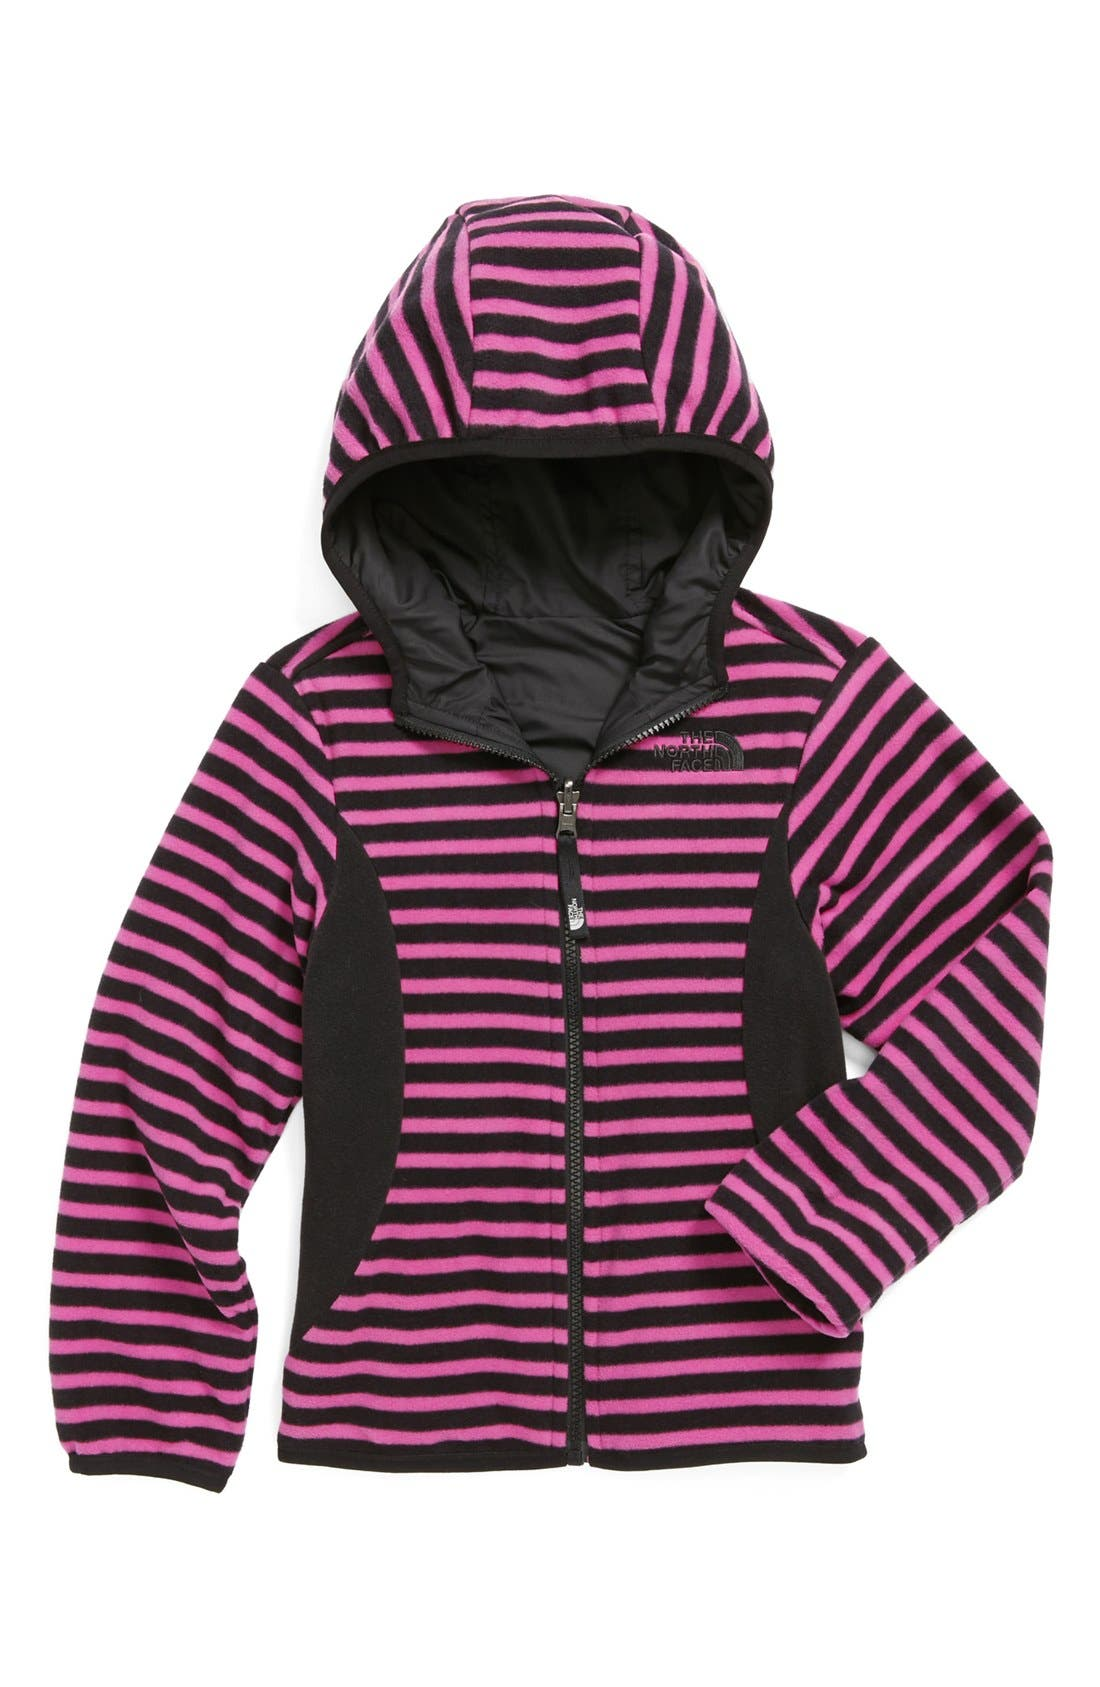 Main Image - The North Face 'Comet' Reversible Jacket (Little Girls)